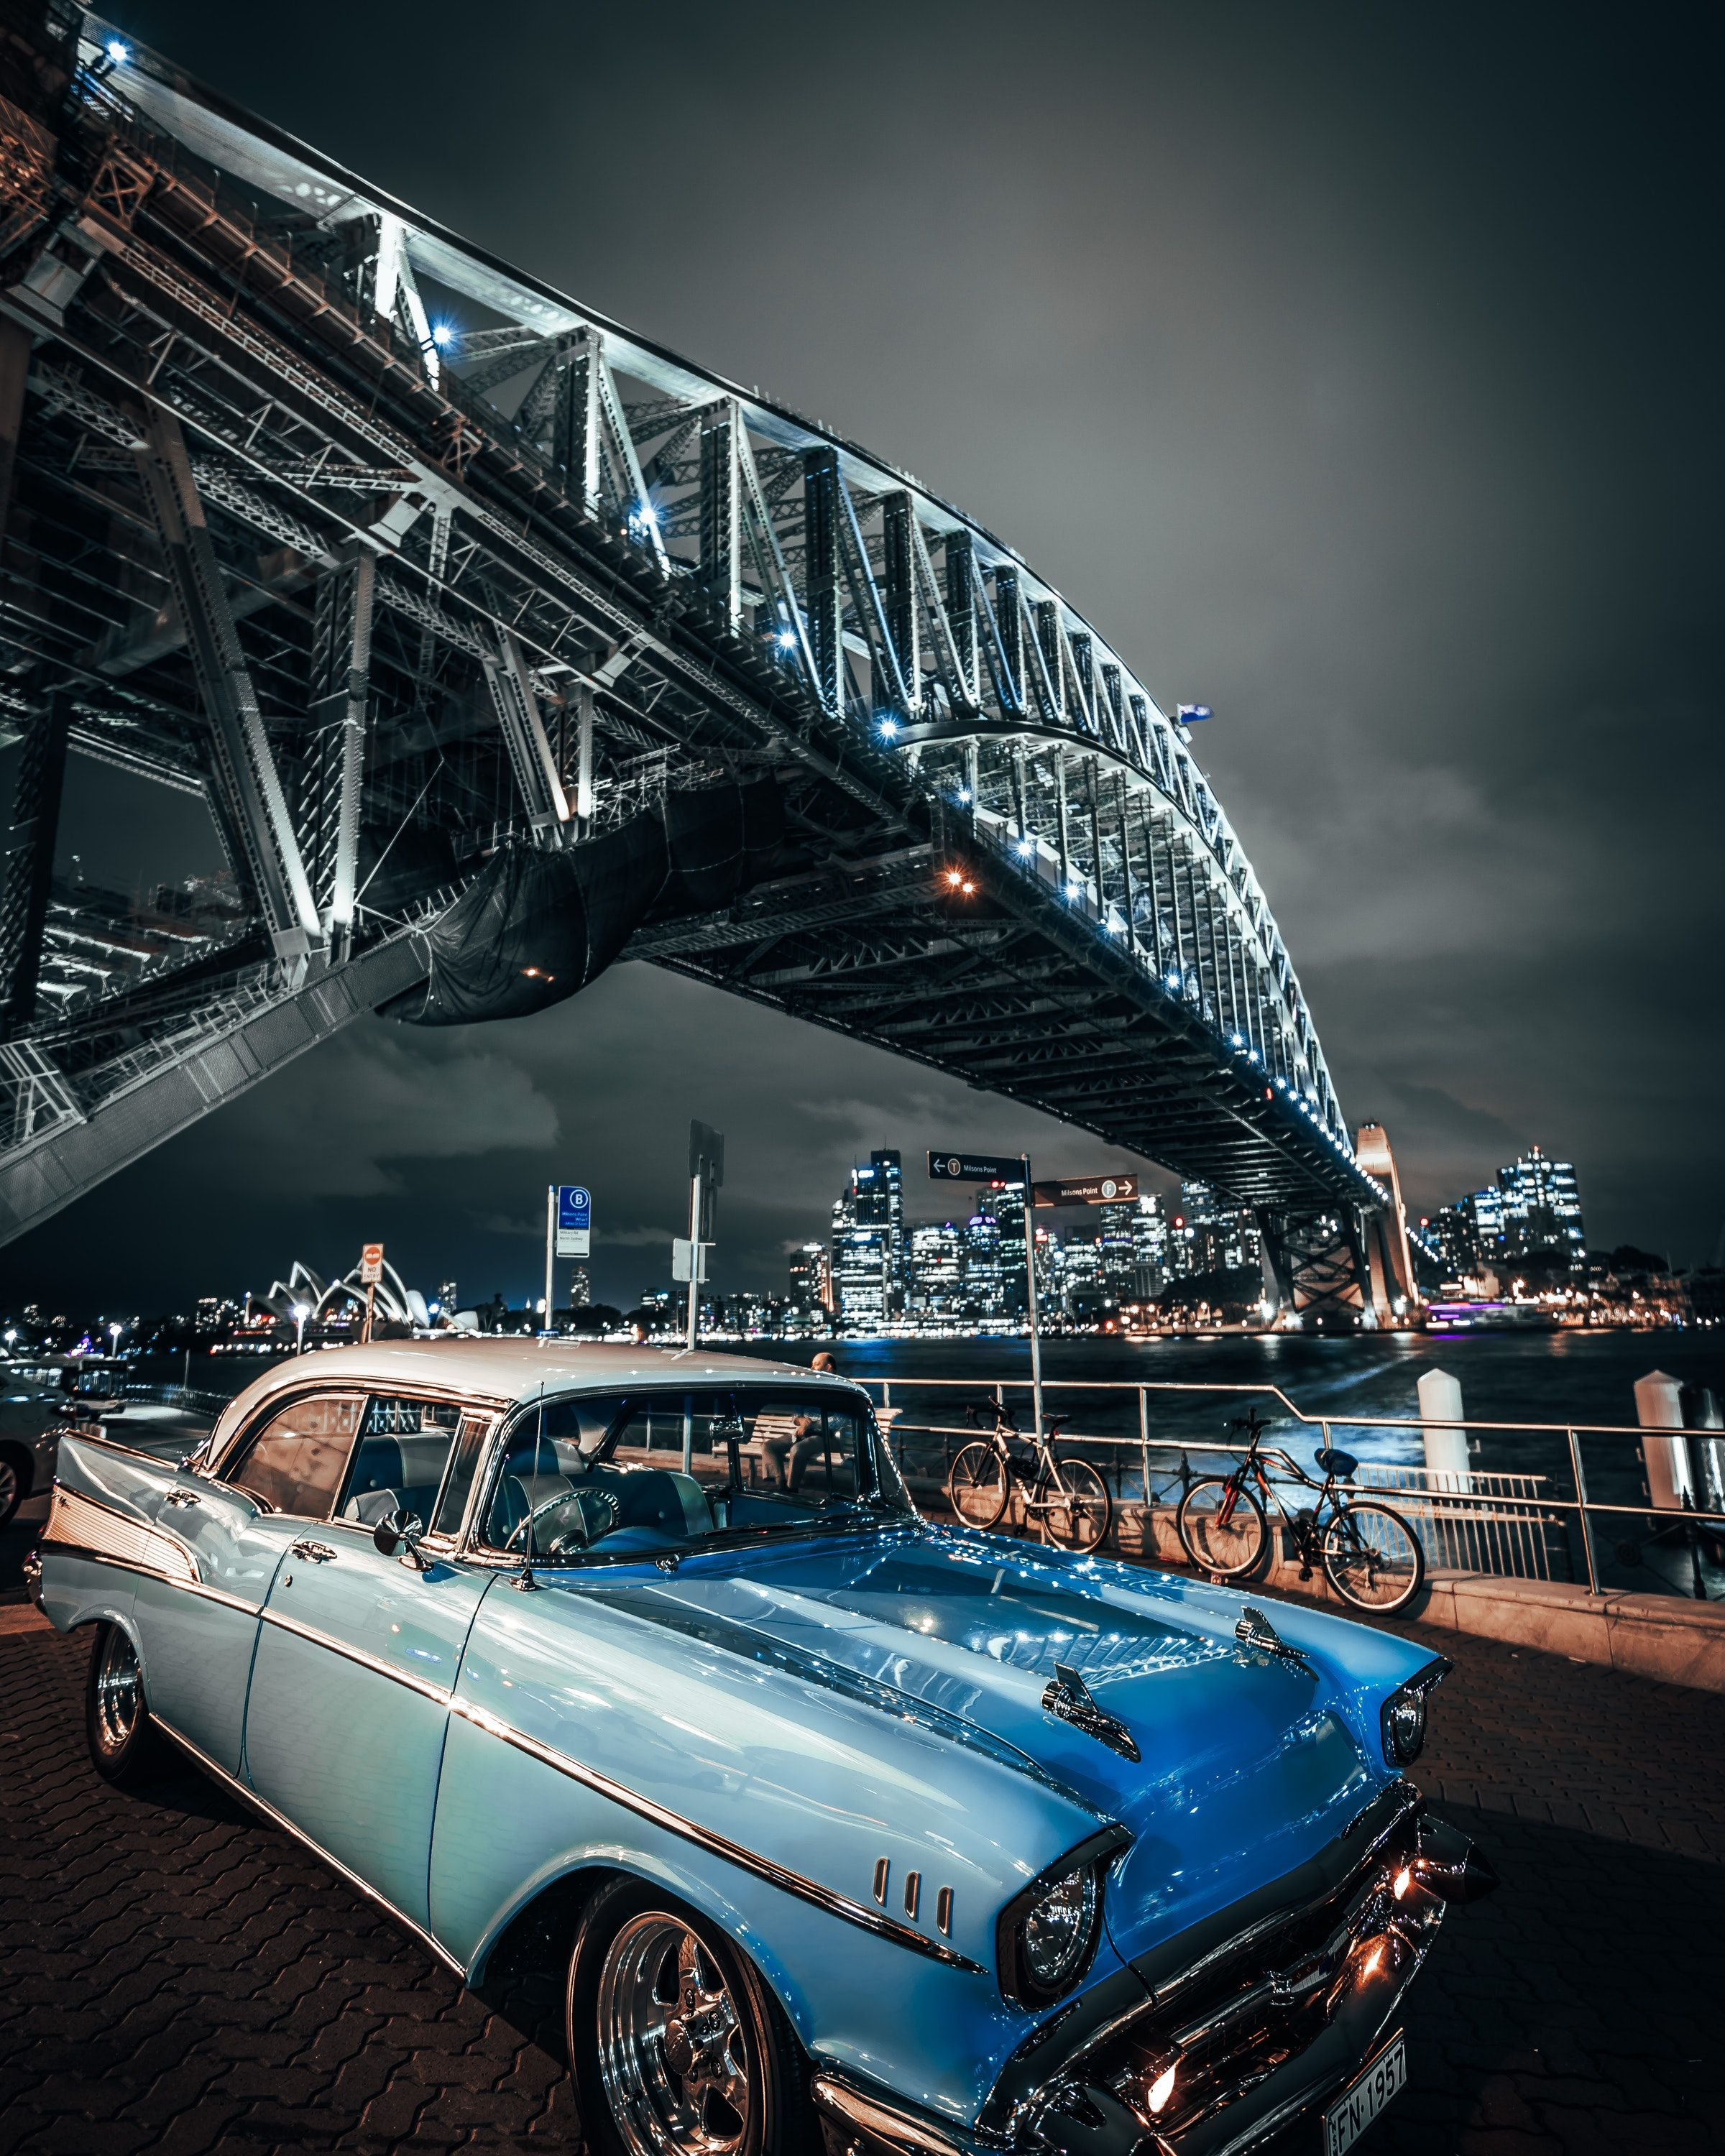 Cars Bridge Structure Architecture Dark Black Wallpapers Hd 4k Background For Android Car Wallpapers Automotive Photography Vintage Muscle